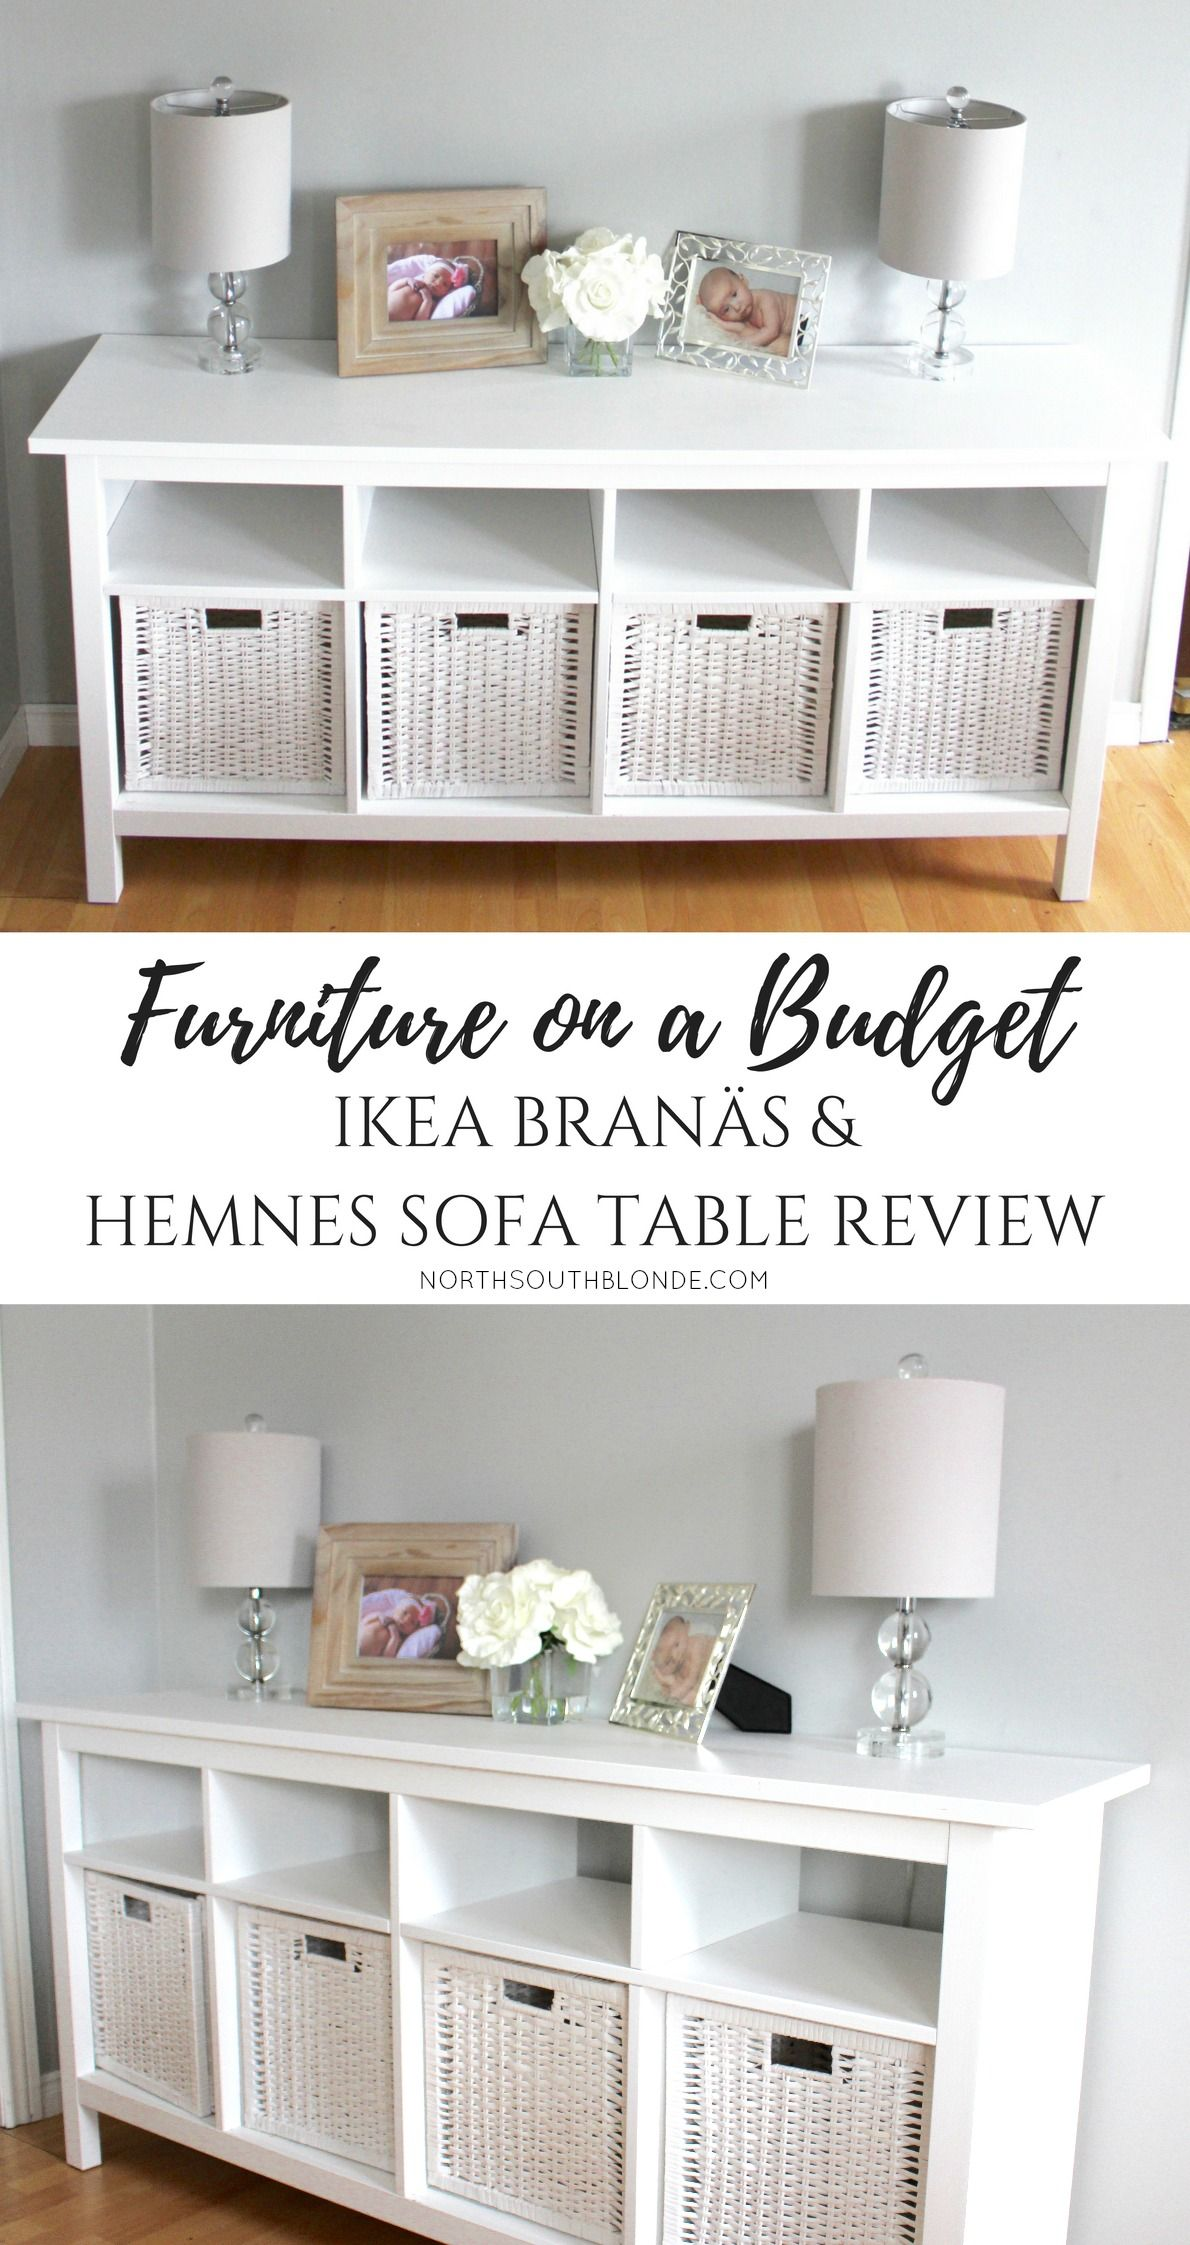 furniture on a budget ikea bran s and hemnes sofa table review entry wardrobe pinterest. Black Bedroom Furniture Sets. Home Design Ideas